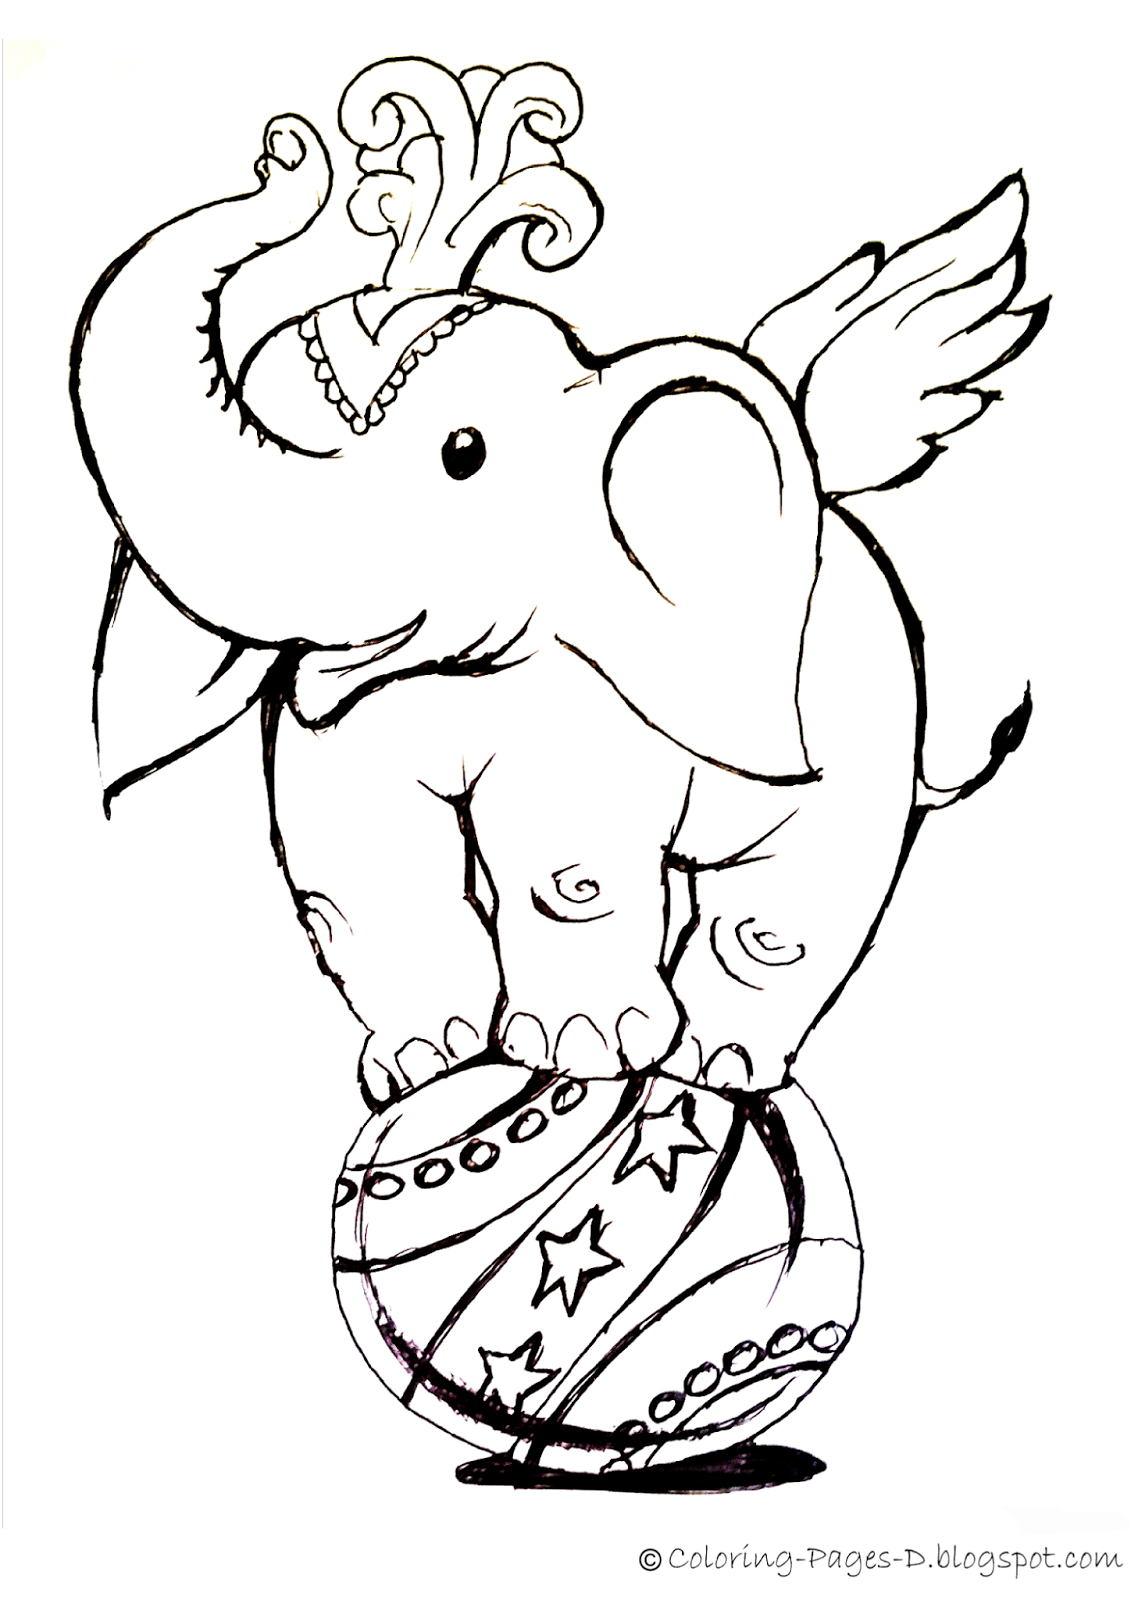 Get This Abstract Elephant Coloring Pages 77421 ! | 1600x1131